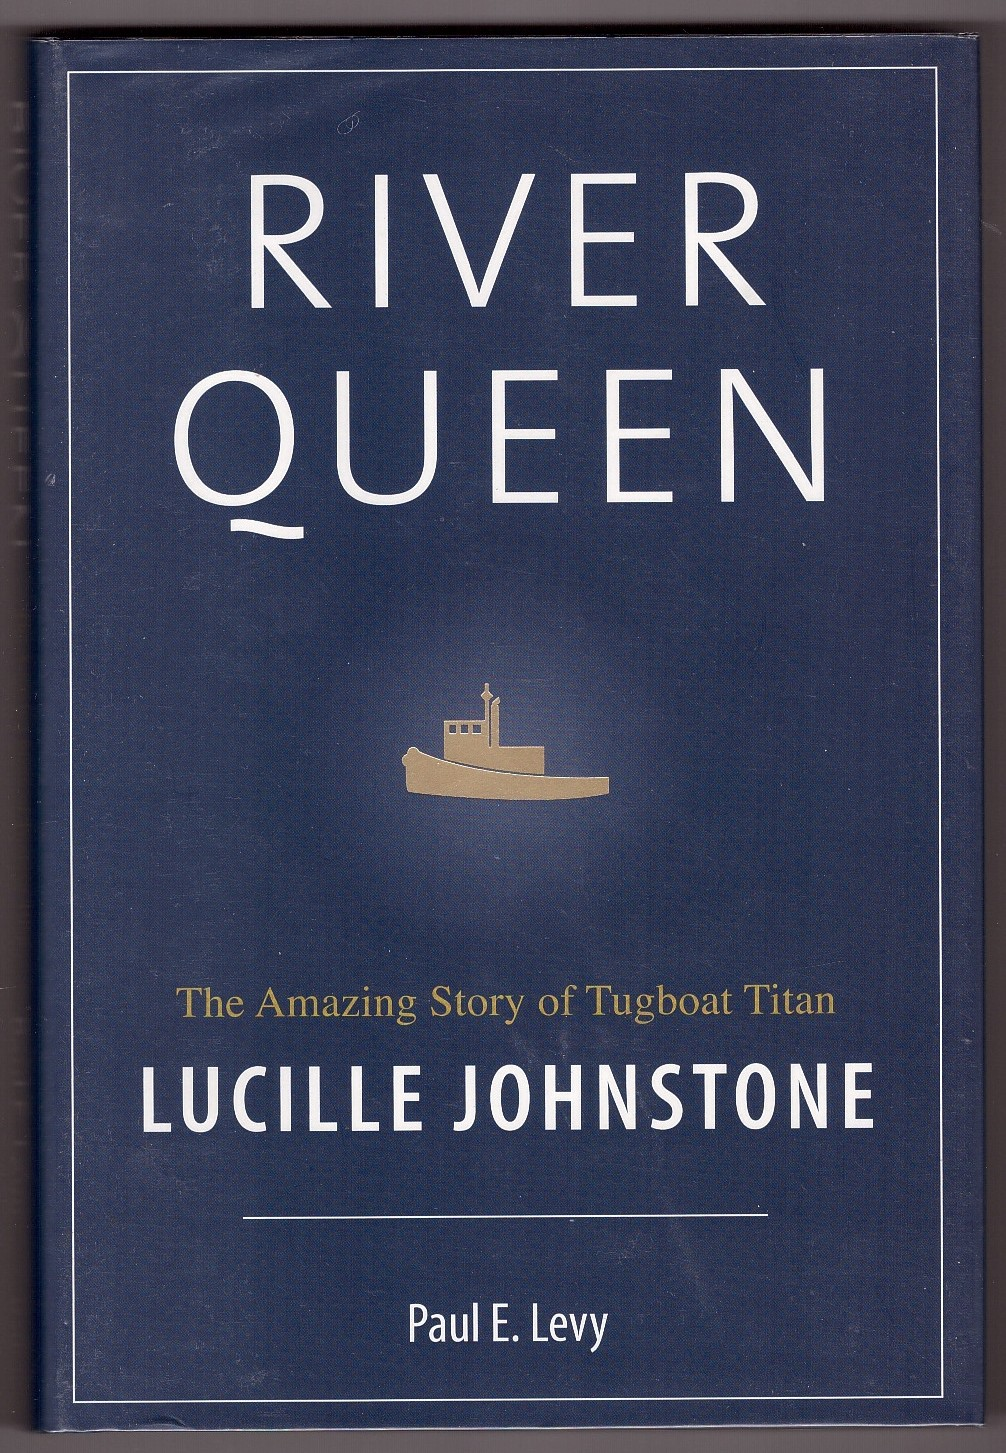 Image for River Queen  The Amazing Story of Tugboat Titan Lucille Johnstone